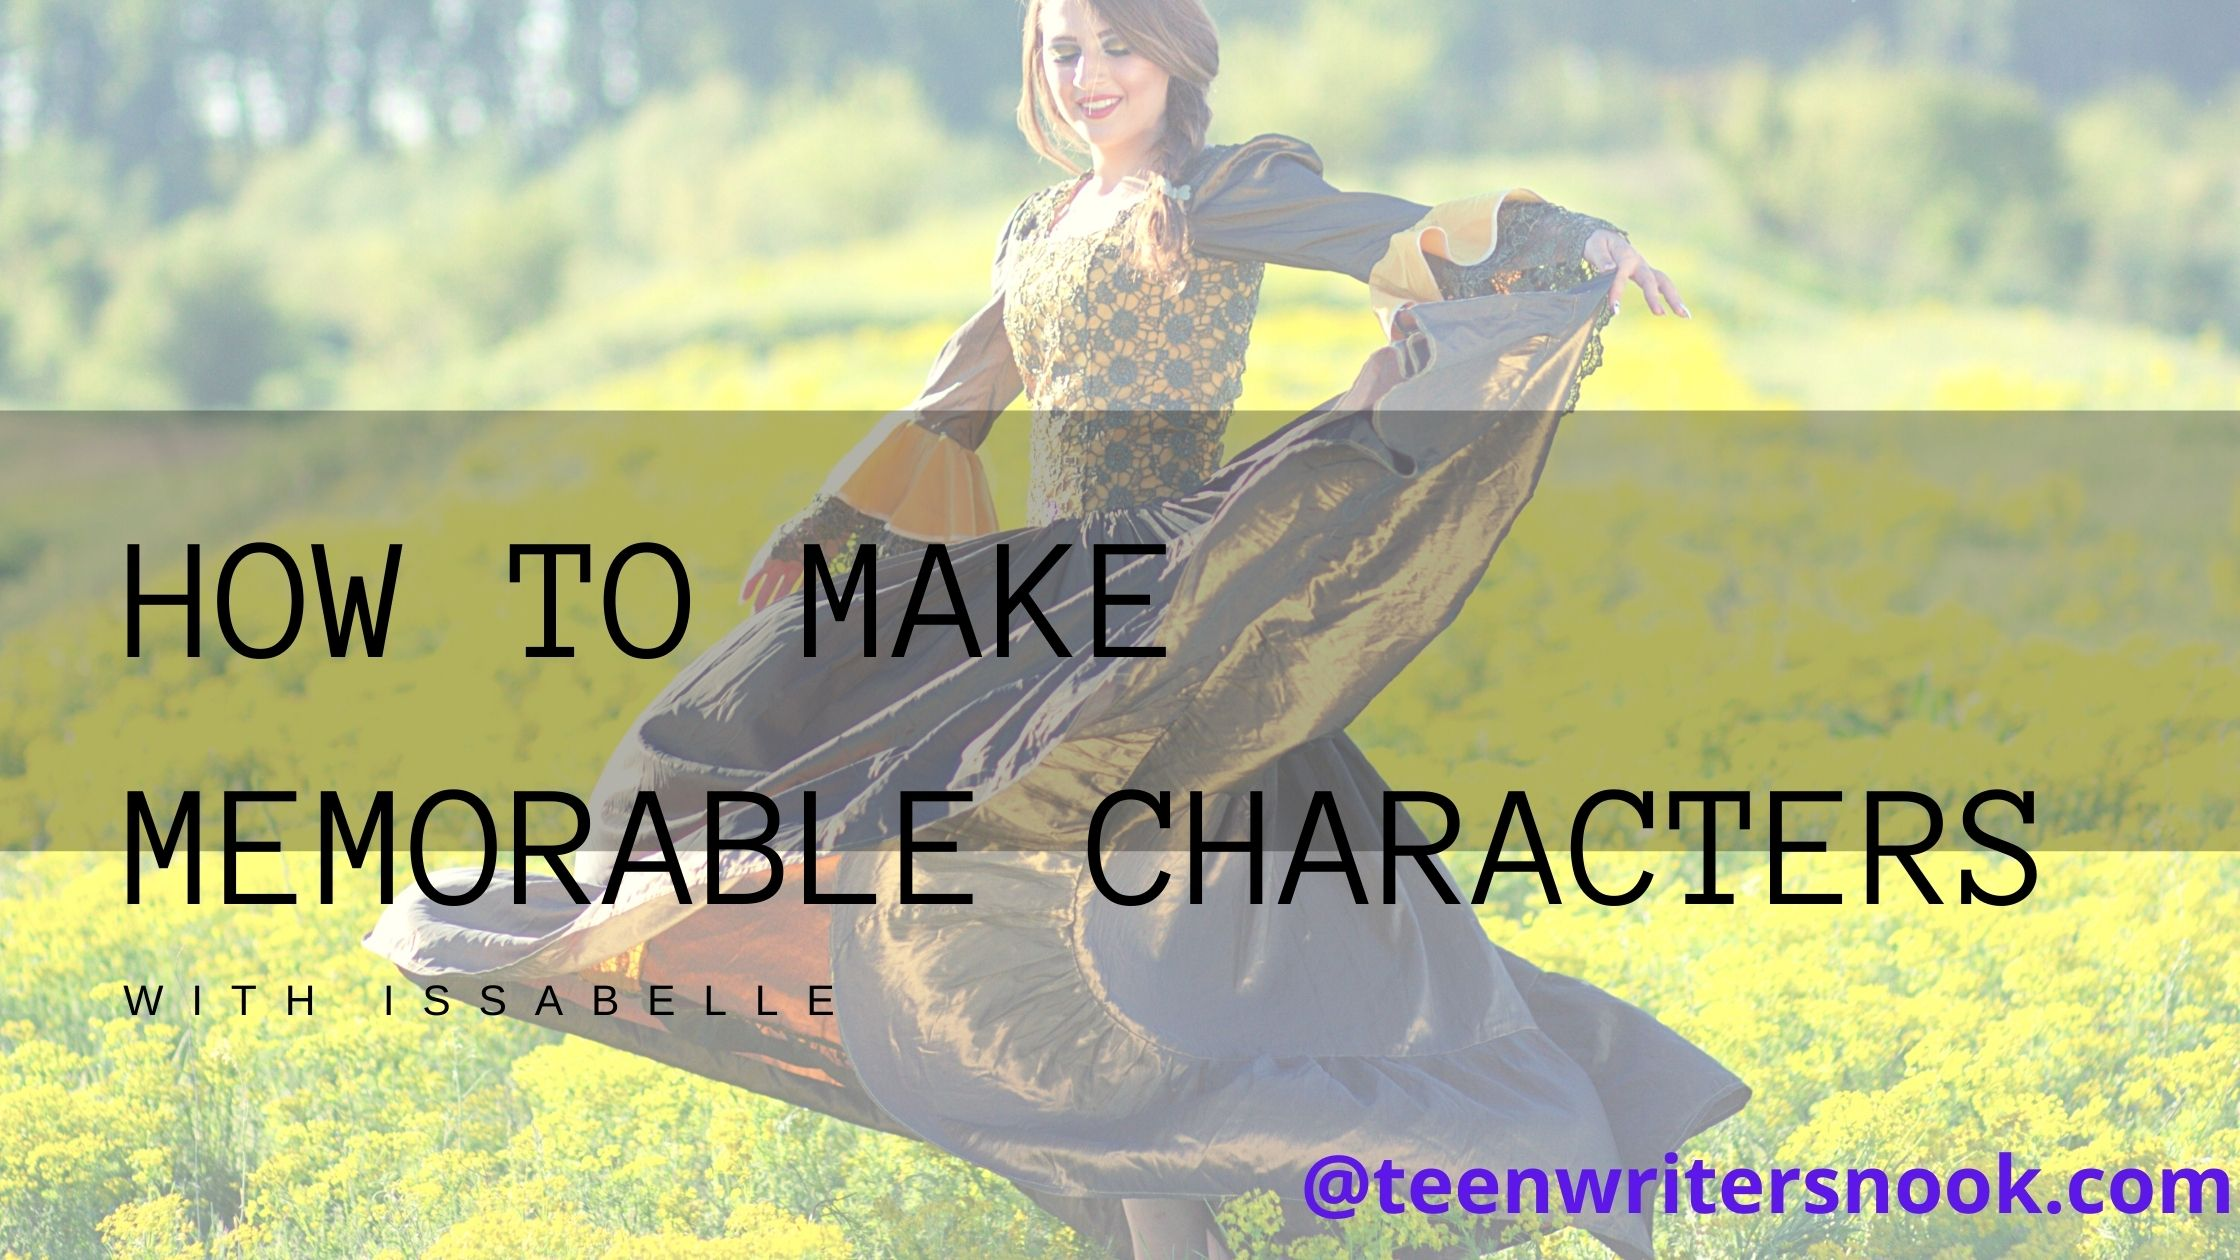 Issabelle returns to her series on character development!